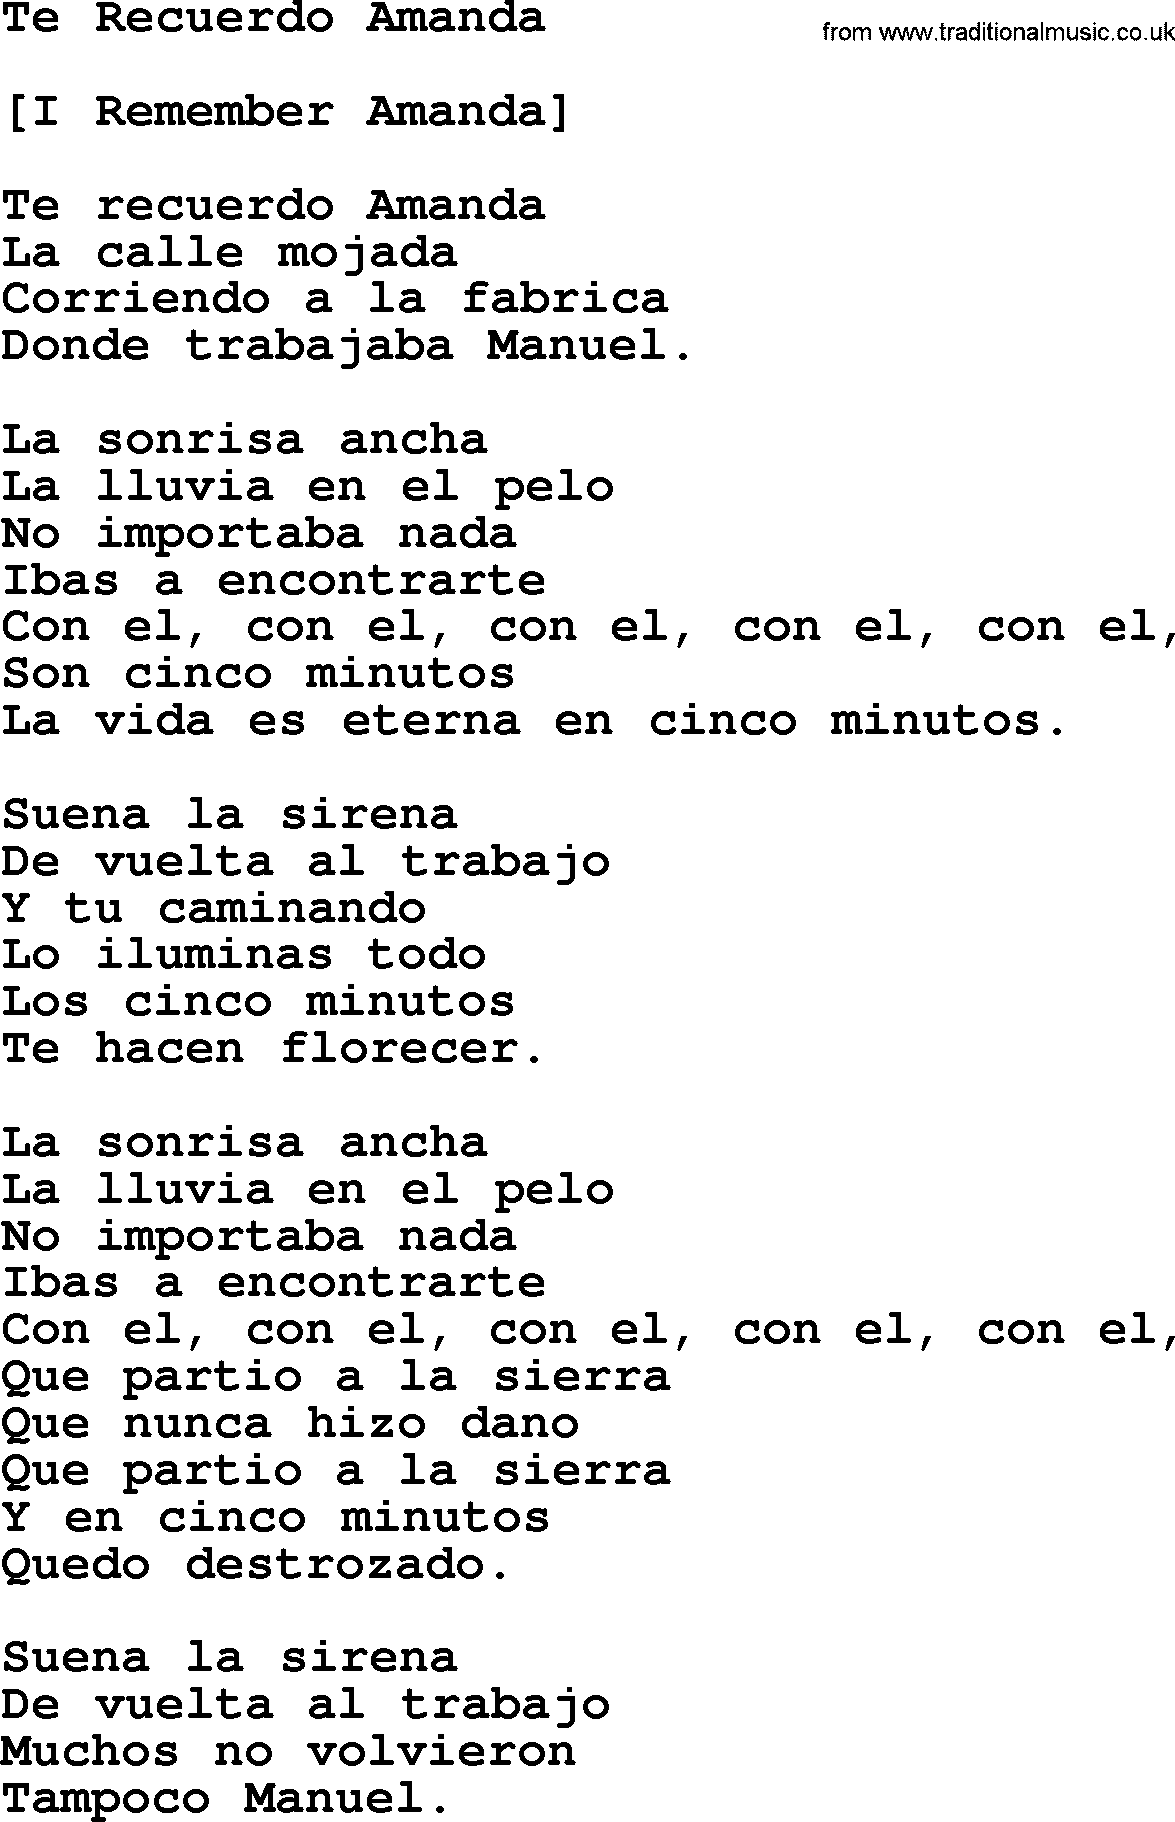 Joan Baez Song Te Recuerdo Amanda Lyrics